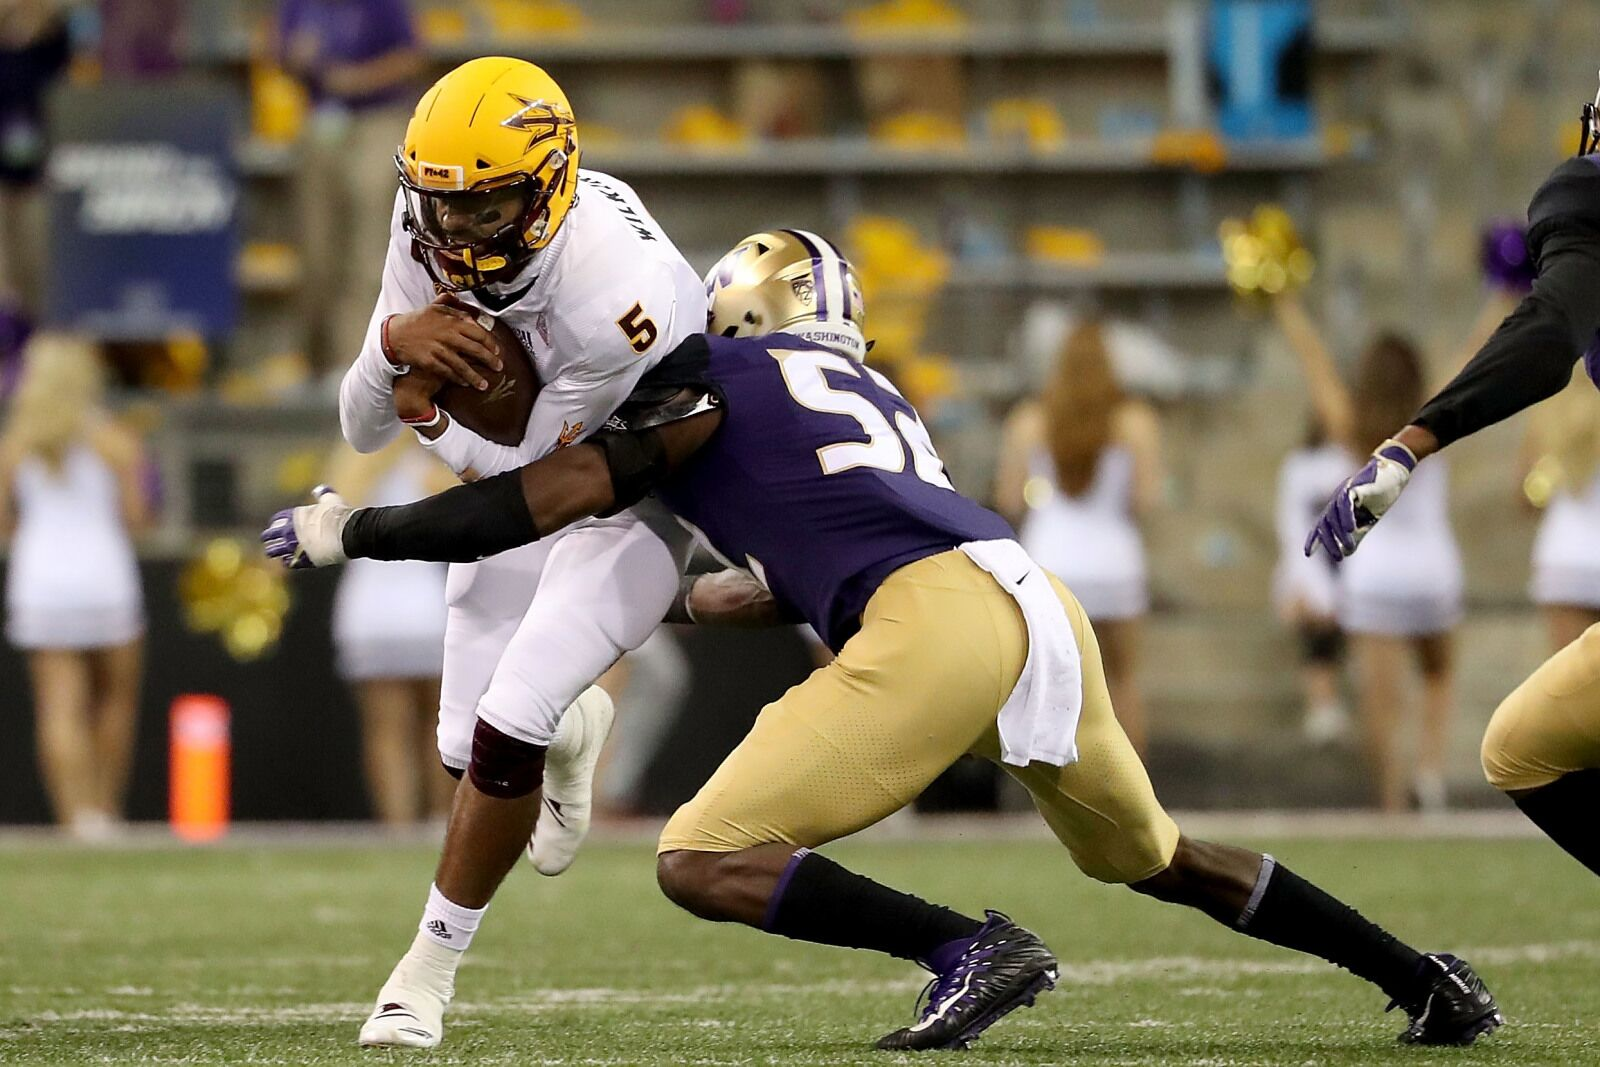 ASU Football: It's the same old story on the road for Sun Devils